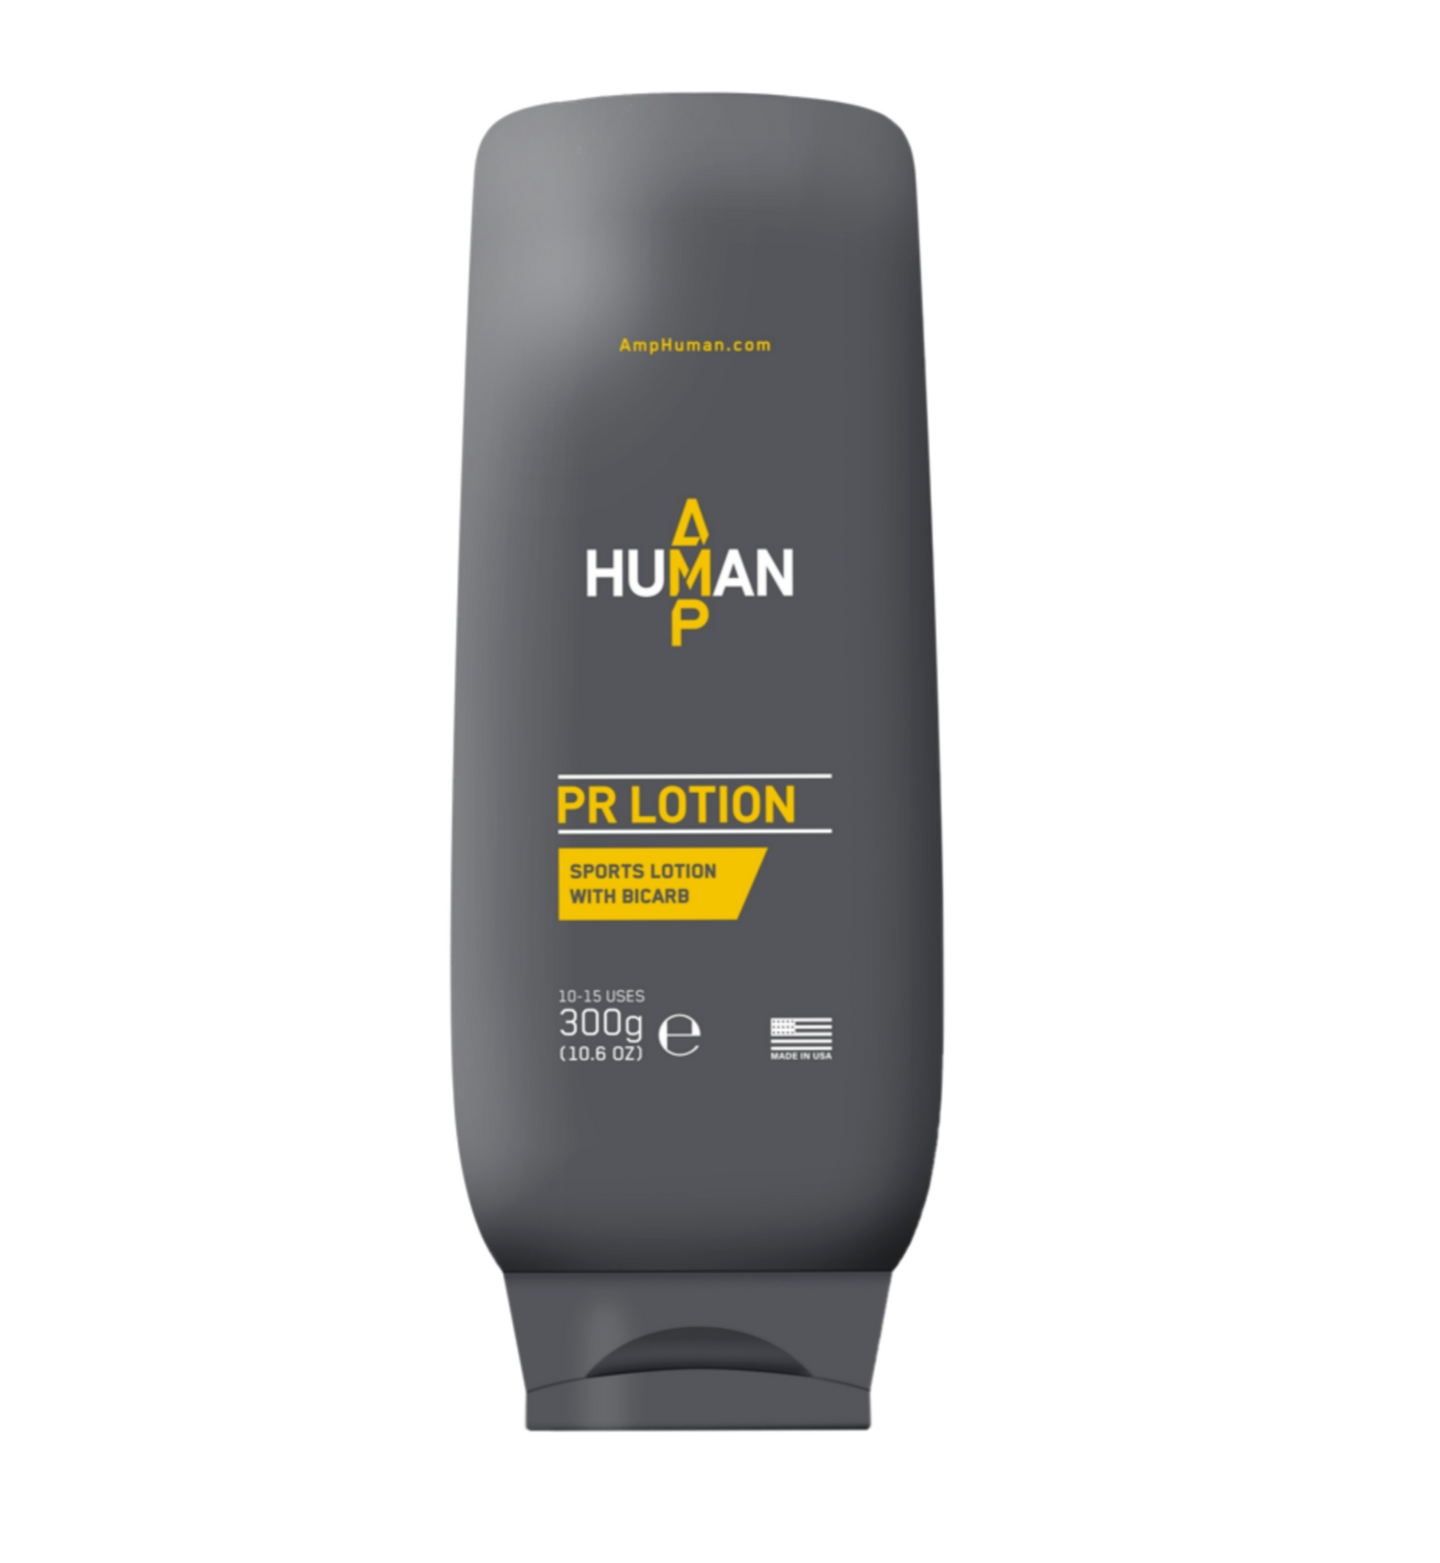 Amp Human PR Lotion UK Bottle